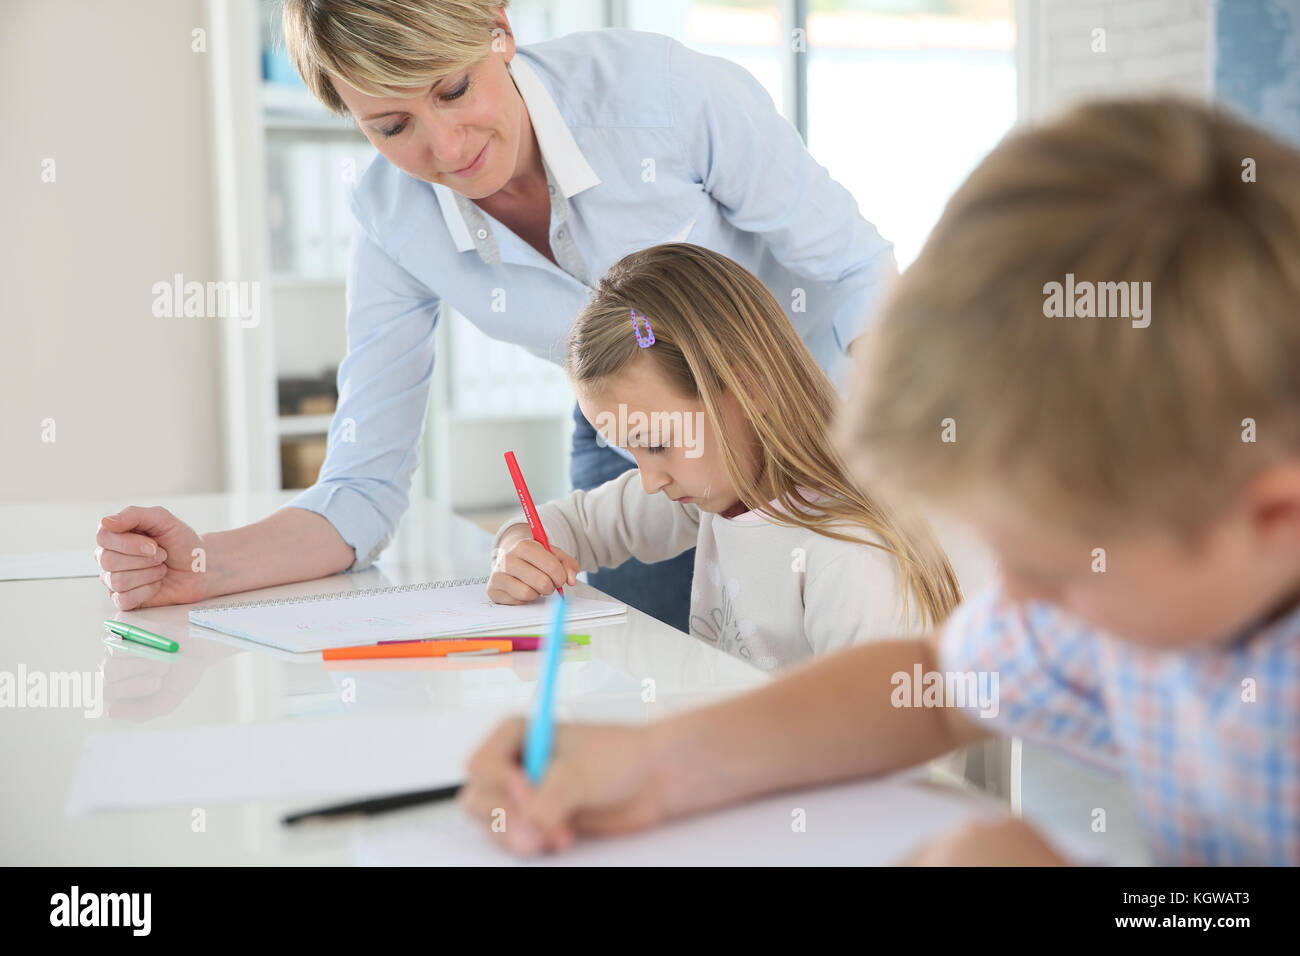 Teacher helping kids in classroom - Stock Image